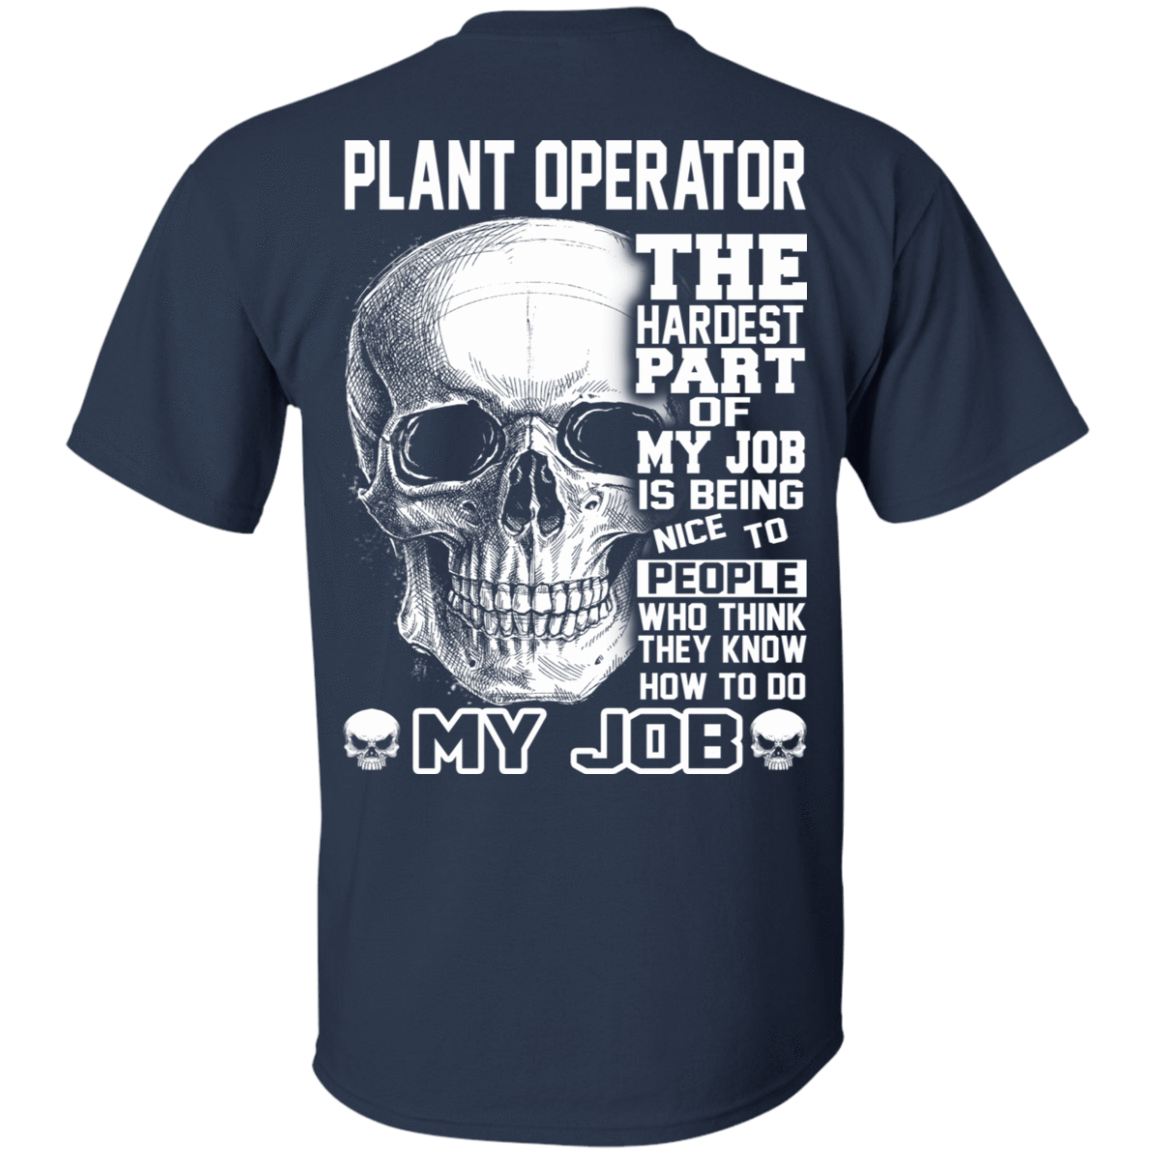 Plant Operator The Hardest Part Of My Job 22-111-71609215-250 - Tee Ript